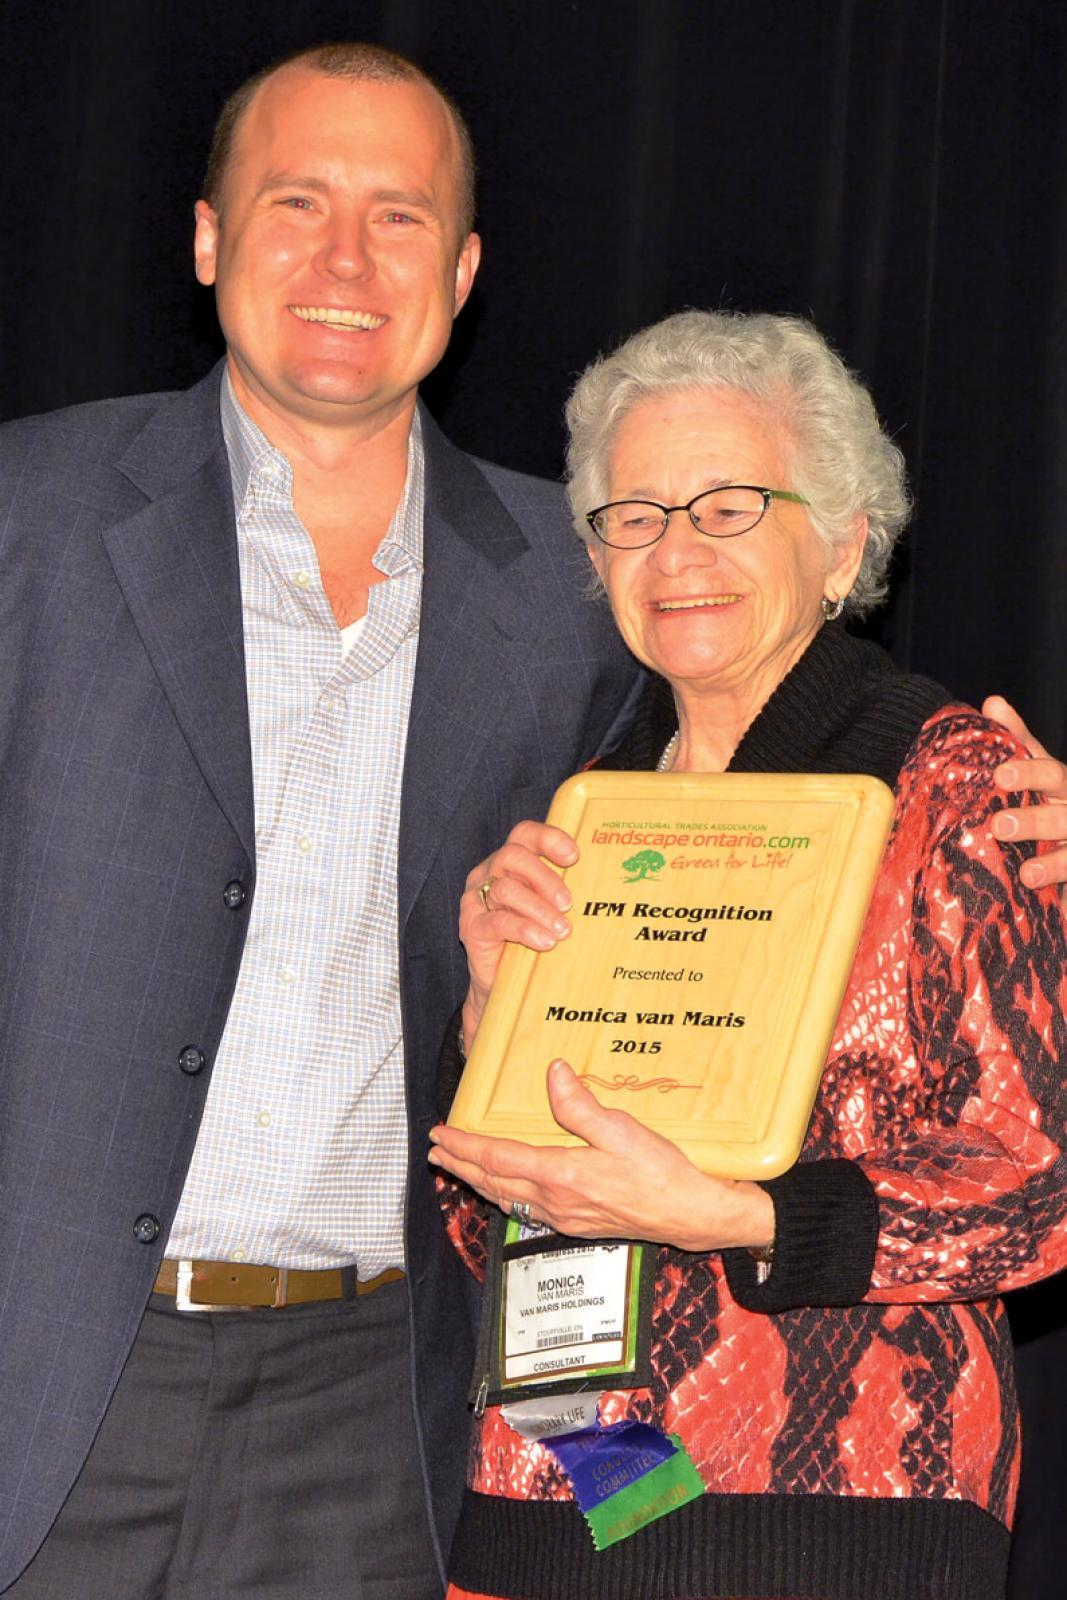 Monica van Maris, a pioneer member of Landscape Ontario and annual volunteer at Congress, was presented with a Leadership Award at the 50th IPM Symposium. She is shown accepting the award from Kyle Tobin, chair of the IPM Symposium Committee.